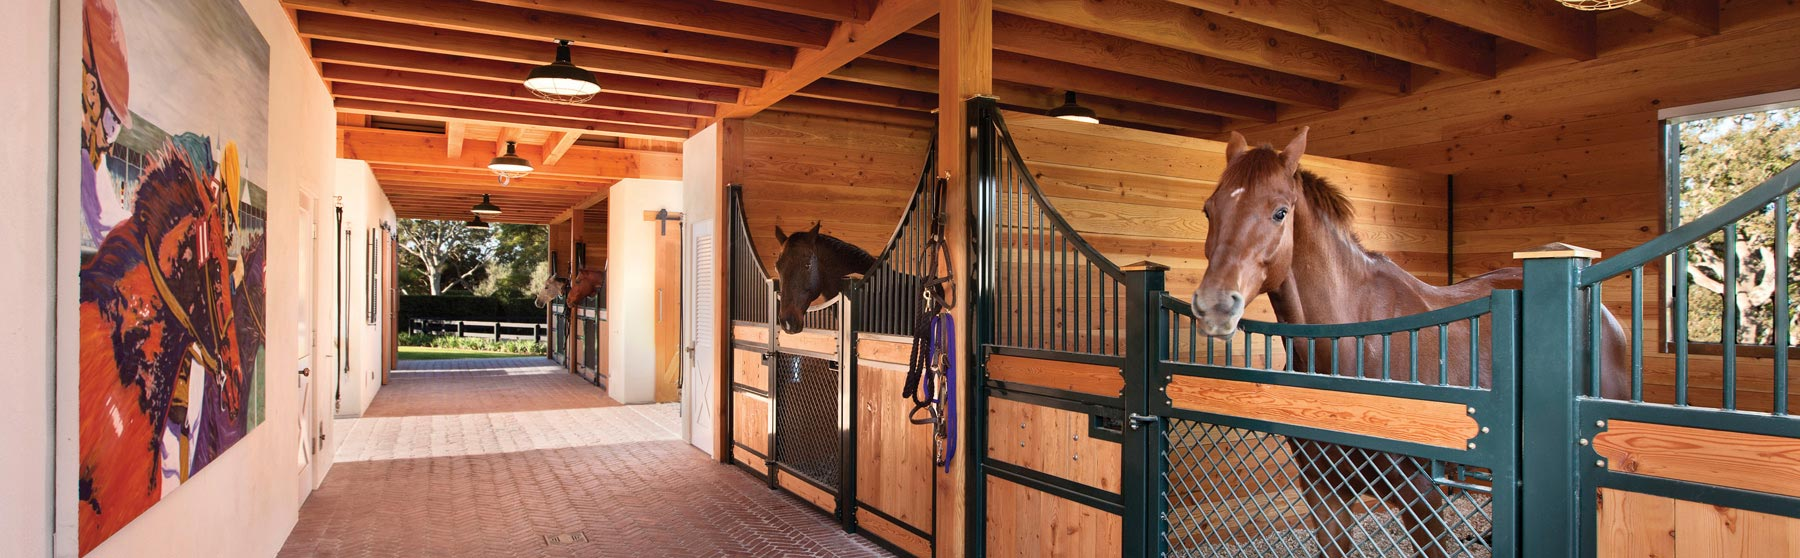 Low Stall Fronts : stall doors - pezcame.com